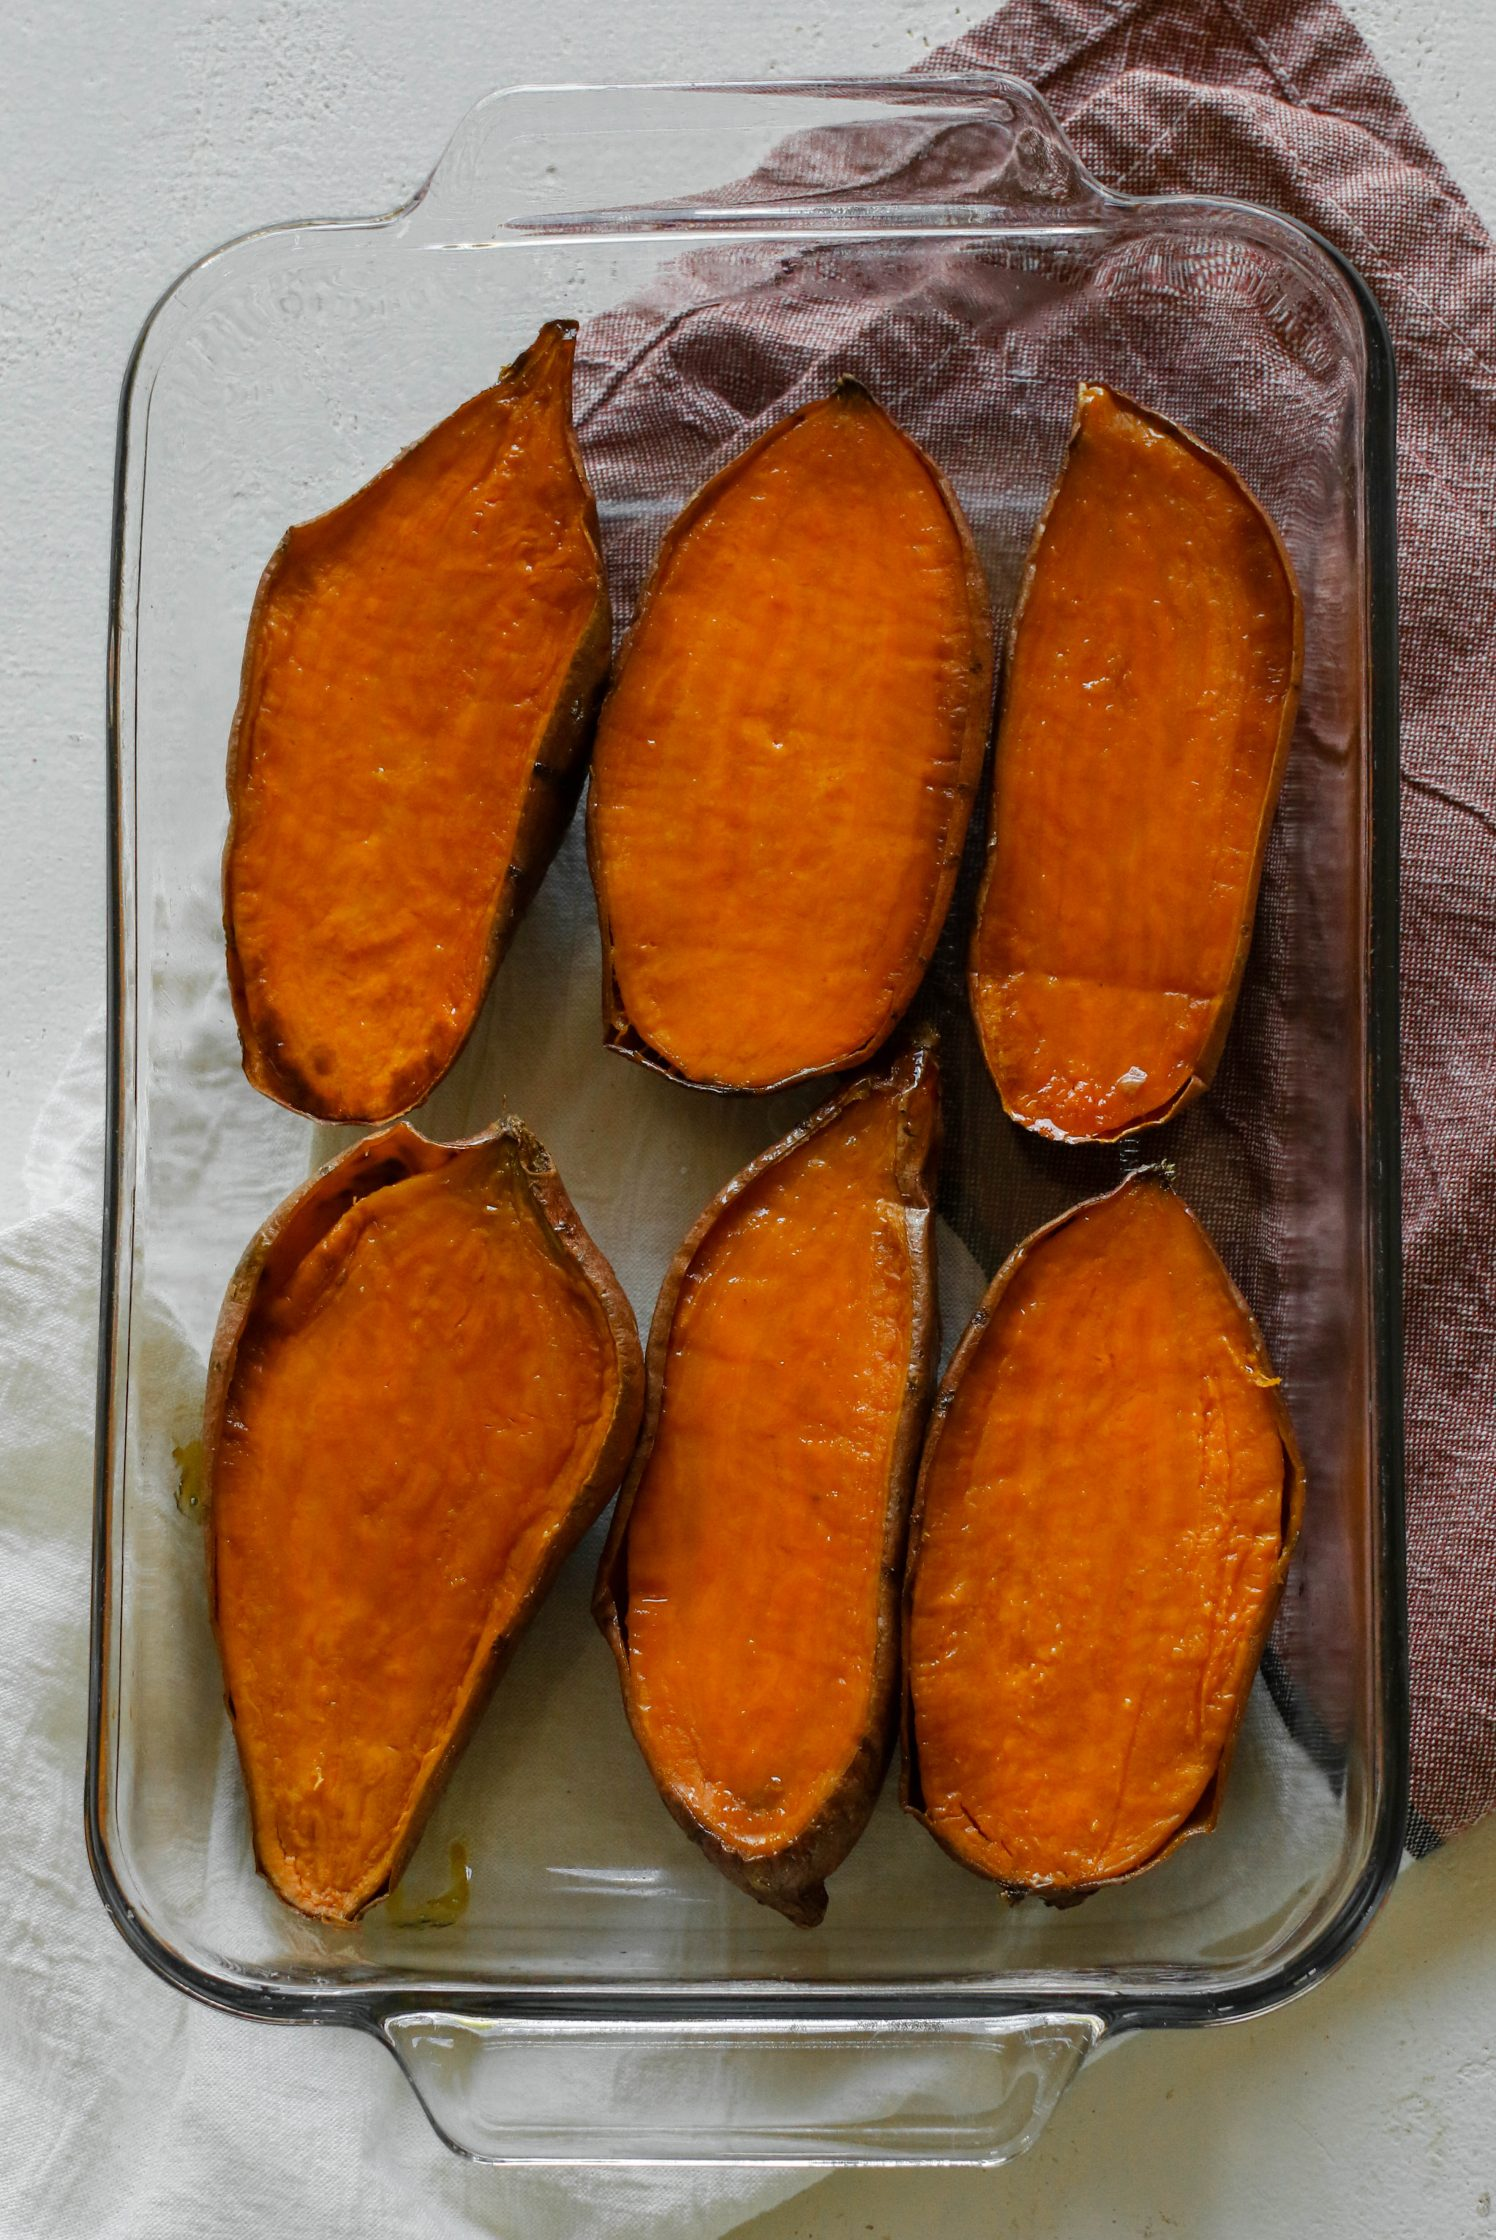 Baked Yams by Flora & Vino